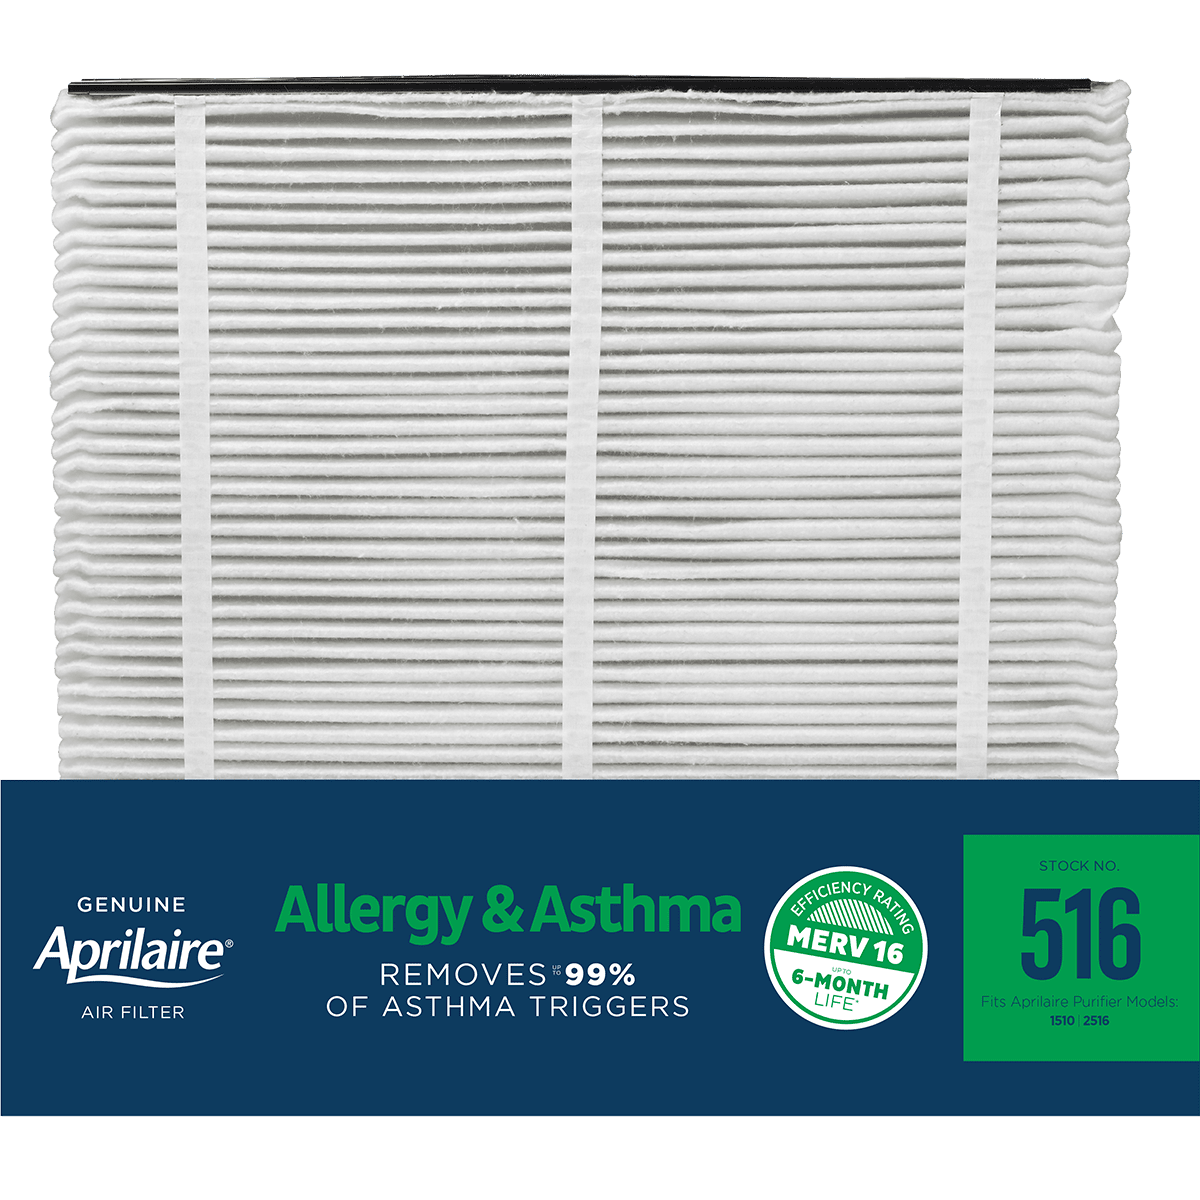 Find Aprilaire 6616 16 Shop Every Store On The Internet Via Products Humidifiers Water Bypass Powerfan Ap7752 A6el901310w A5fcp0198 A5fcw325 A5fmps0910 A5fh0411